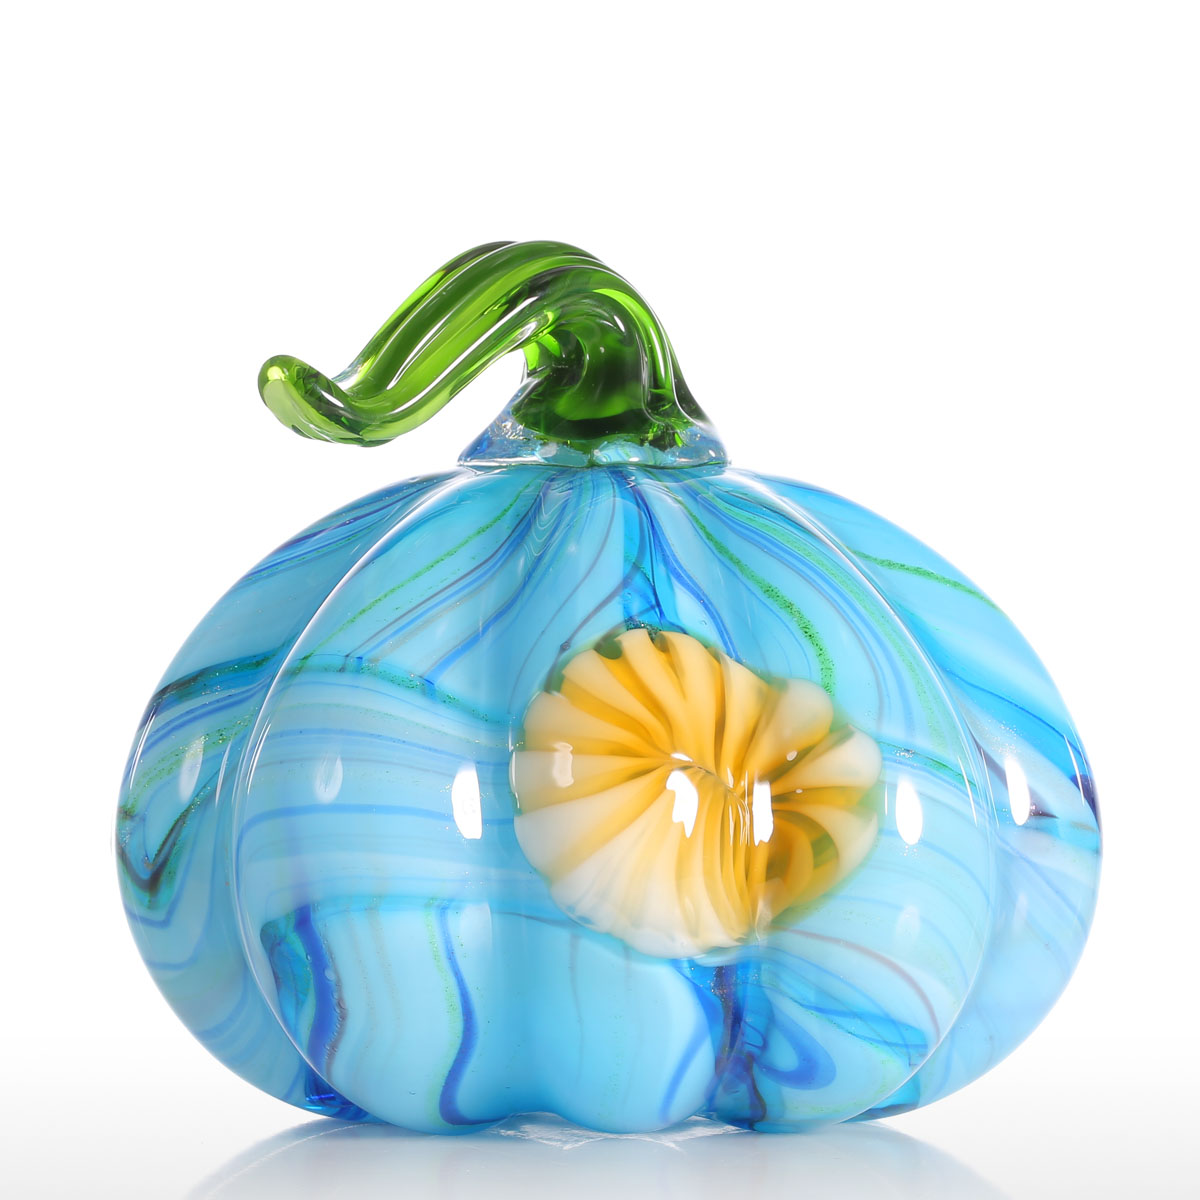 Tooarts Colorful Pumpkin Gift Glass Ornament Handblown